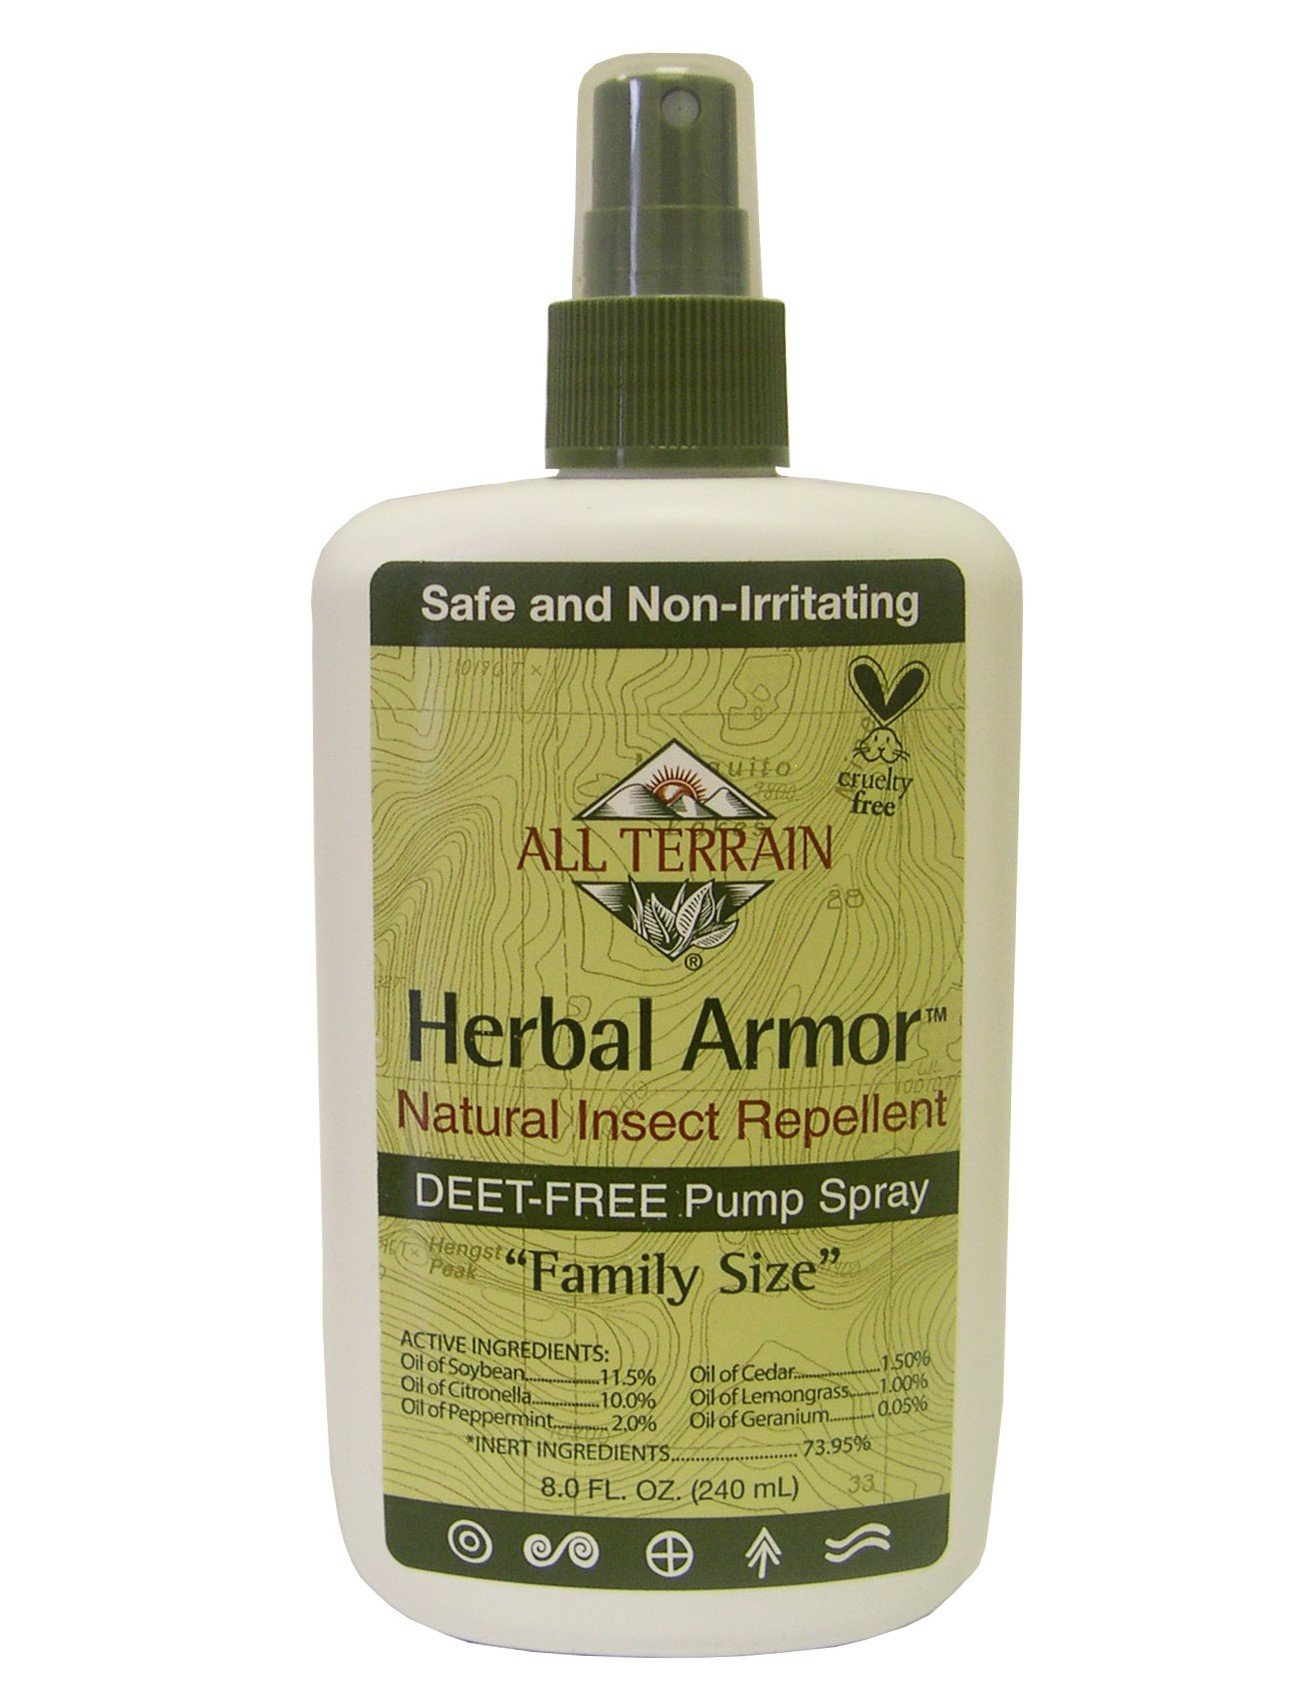 All Terrain Herbal Armor DEET-Free Organic Insect Repellent